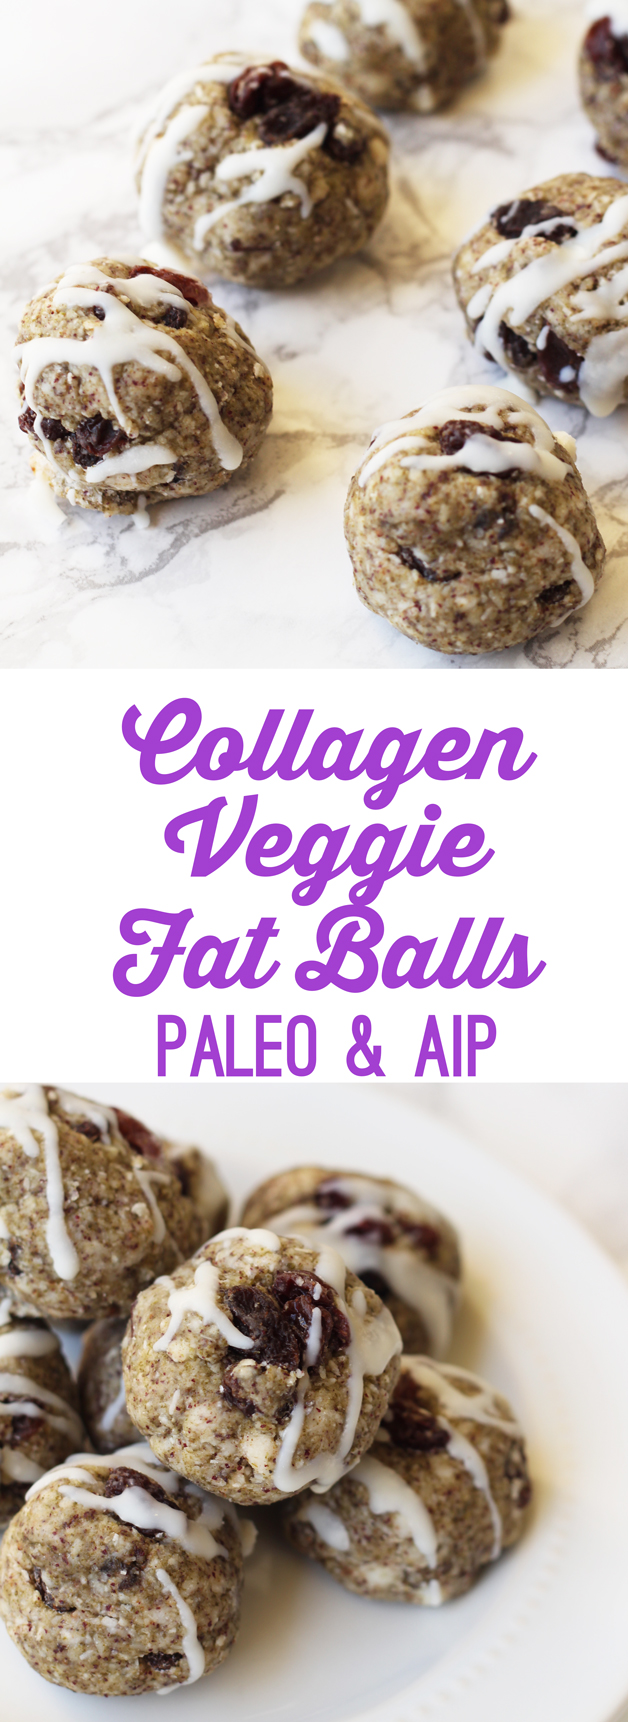 Collagen Veggie Fat Balls